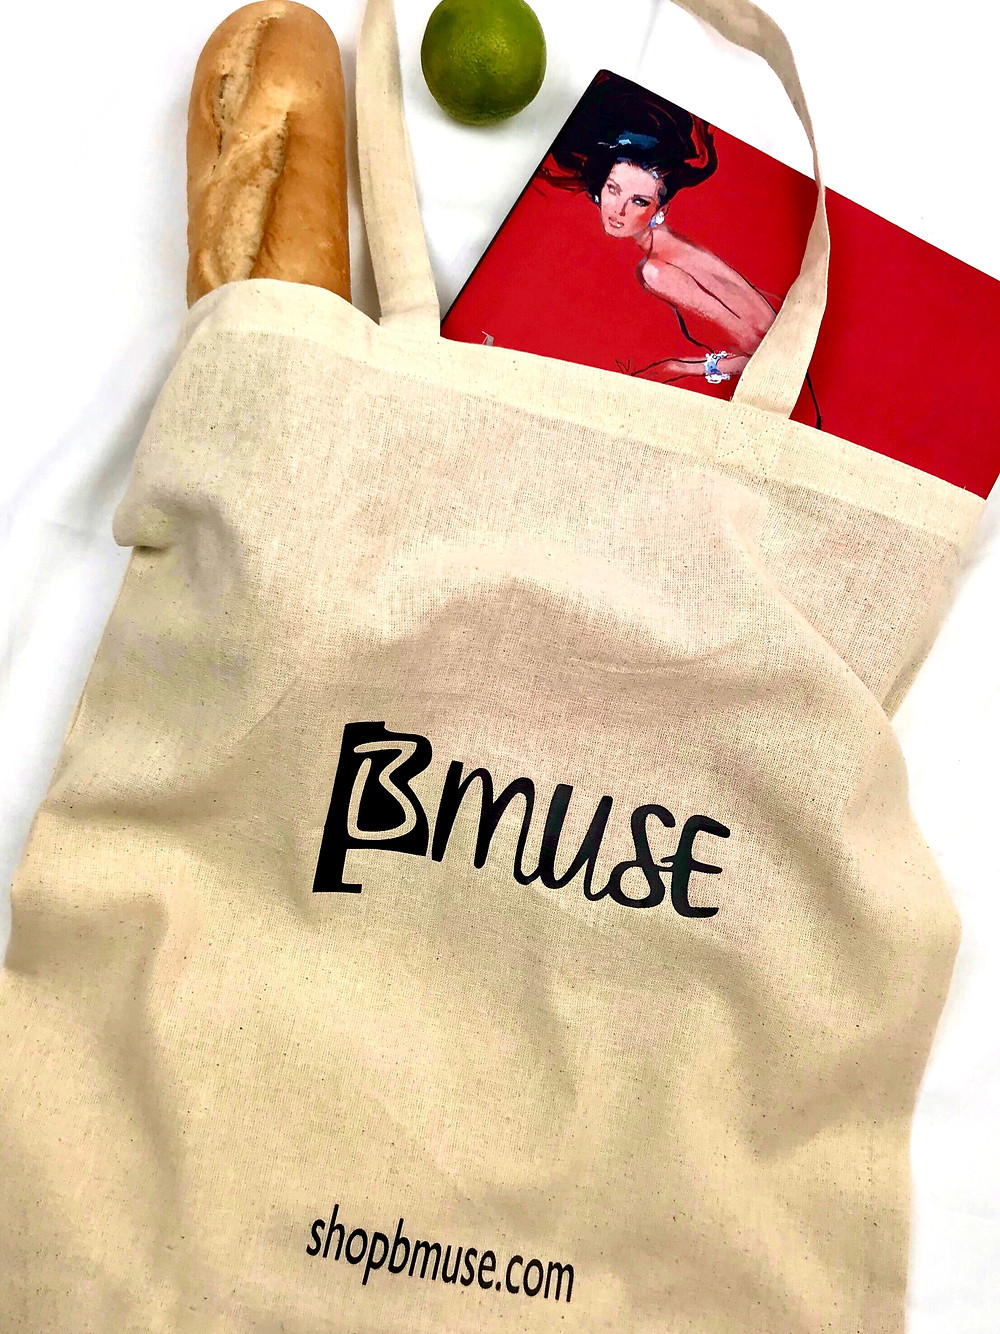 BMUSE STYLISH & SUSTAINABLE TOTE BAG available as part of the BMUSE ESSENTIAL LOCKDOWN KIT or can be purchased individually also